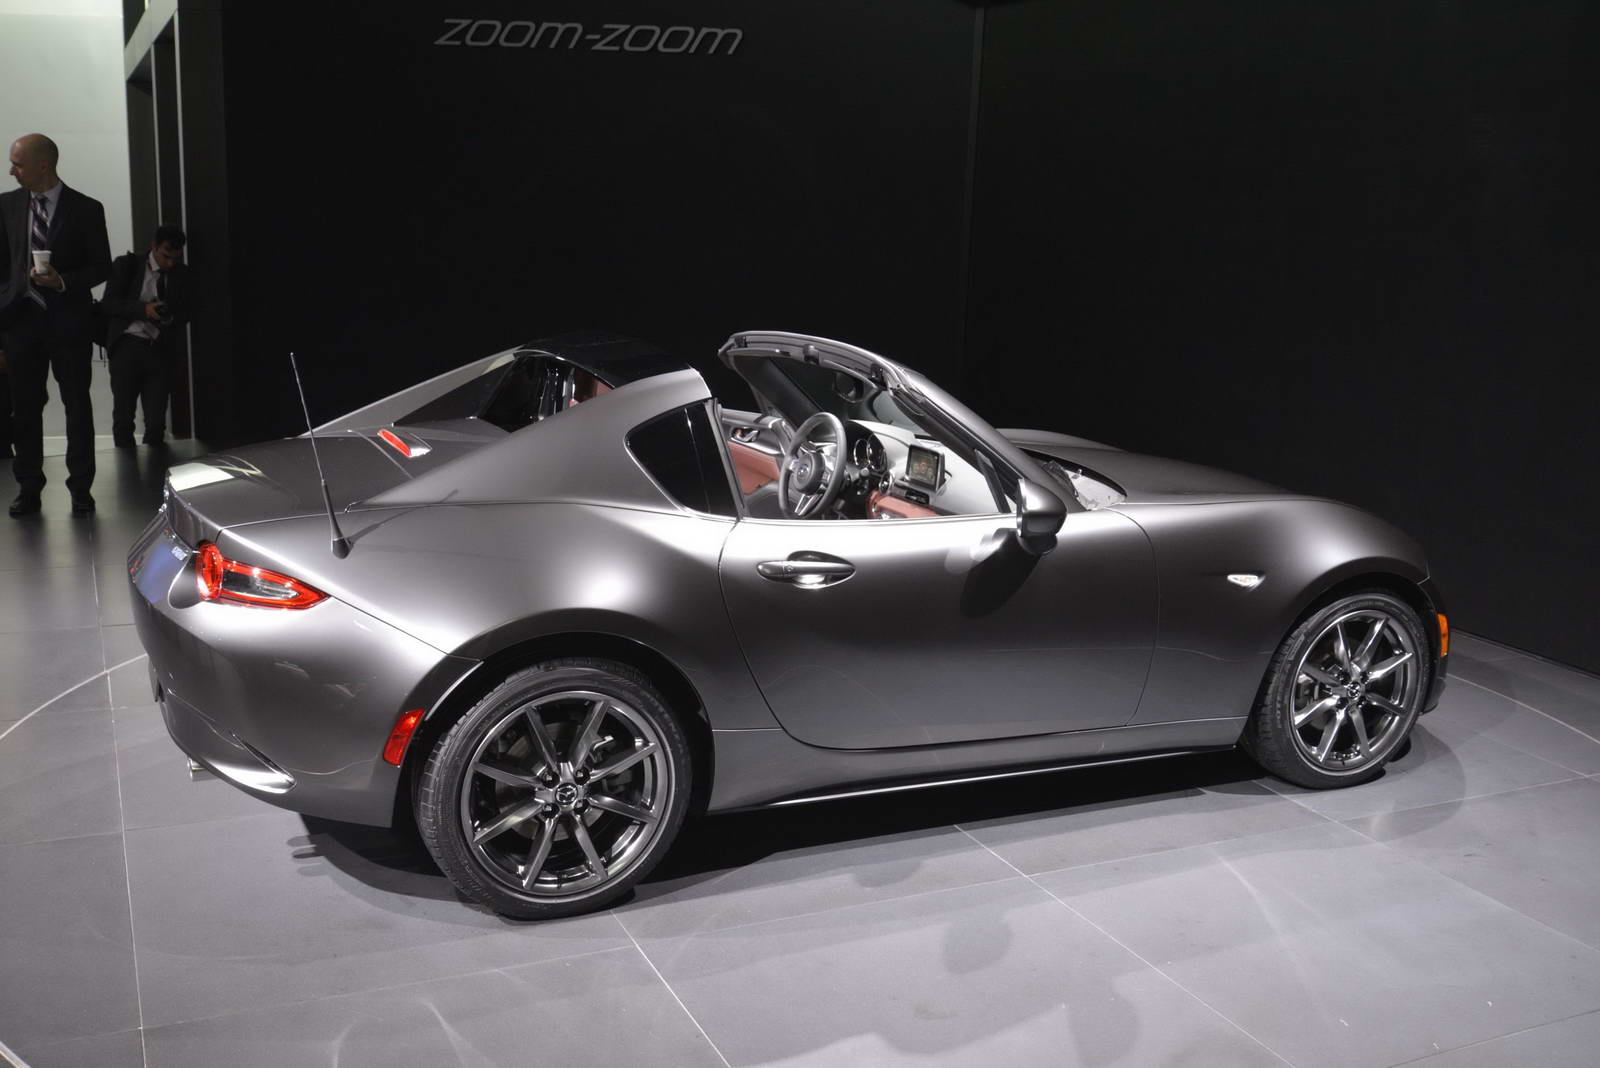 prix mazda mx 5 mazda mx prix nouvelle mazda mx 5 mazda. Black Bedroom Furniture Sets. Home Design Ideas